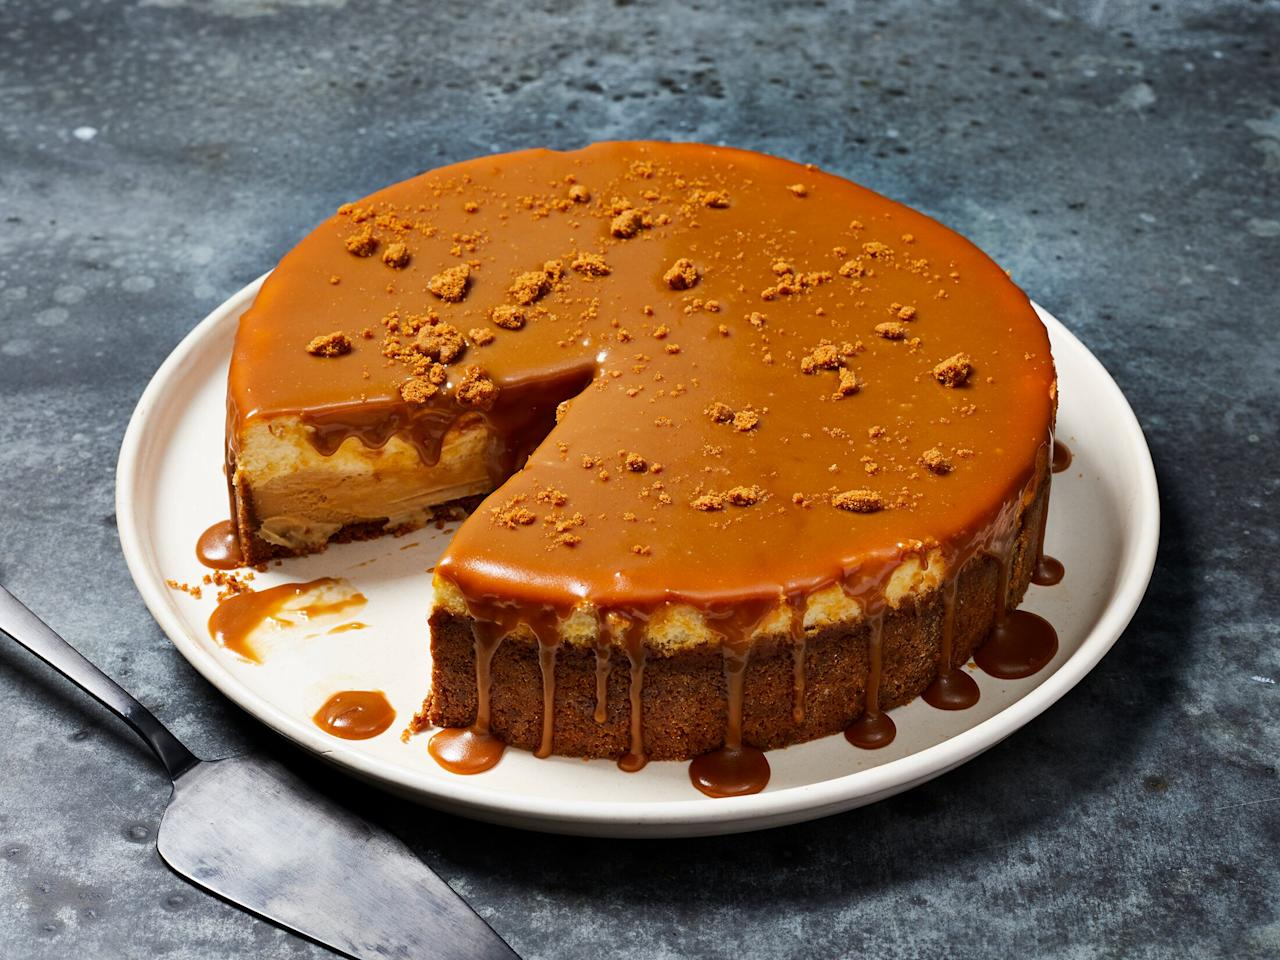 """<p>This decadent cheesecake harnesses the addictively toasty power of speculoos cookies in the crust, in a layer of the filling, and in an over-the-top delicious caramel sauce you're gonna want to pour over everything (we highly suggest you do). Perfect for a holiday gathering or other special occasion, this cookie butter cheesecake recipe is guaranteed to please. We tested using Biscoff cookie butter, but feel free to use your favorite brand of speculoos spread. </p> <p><a href=""""https://www.myrecipes.com/recipe/cookie-butter-cheesecake"""">Cookie Butter Cheesecake Recipe</a></p>"""